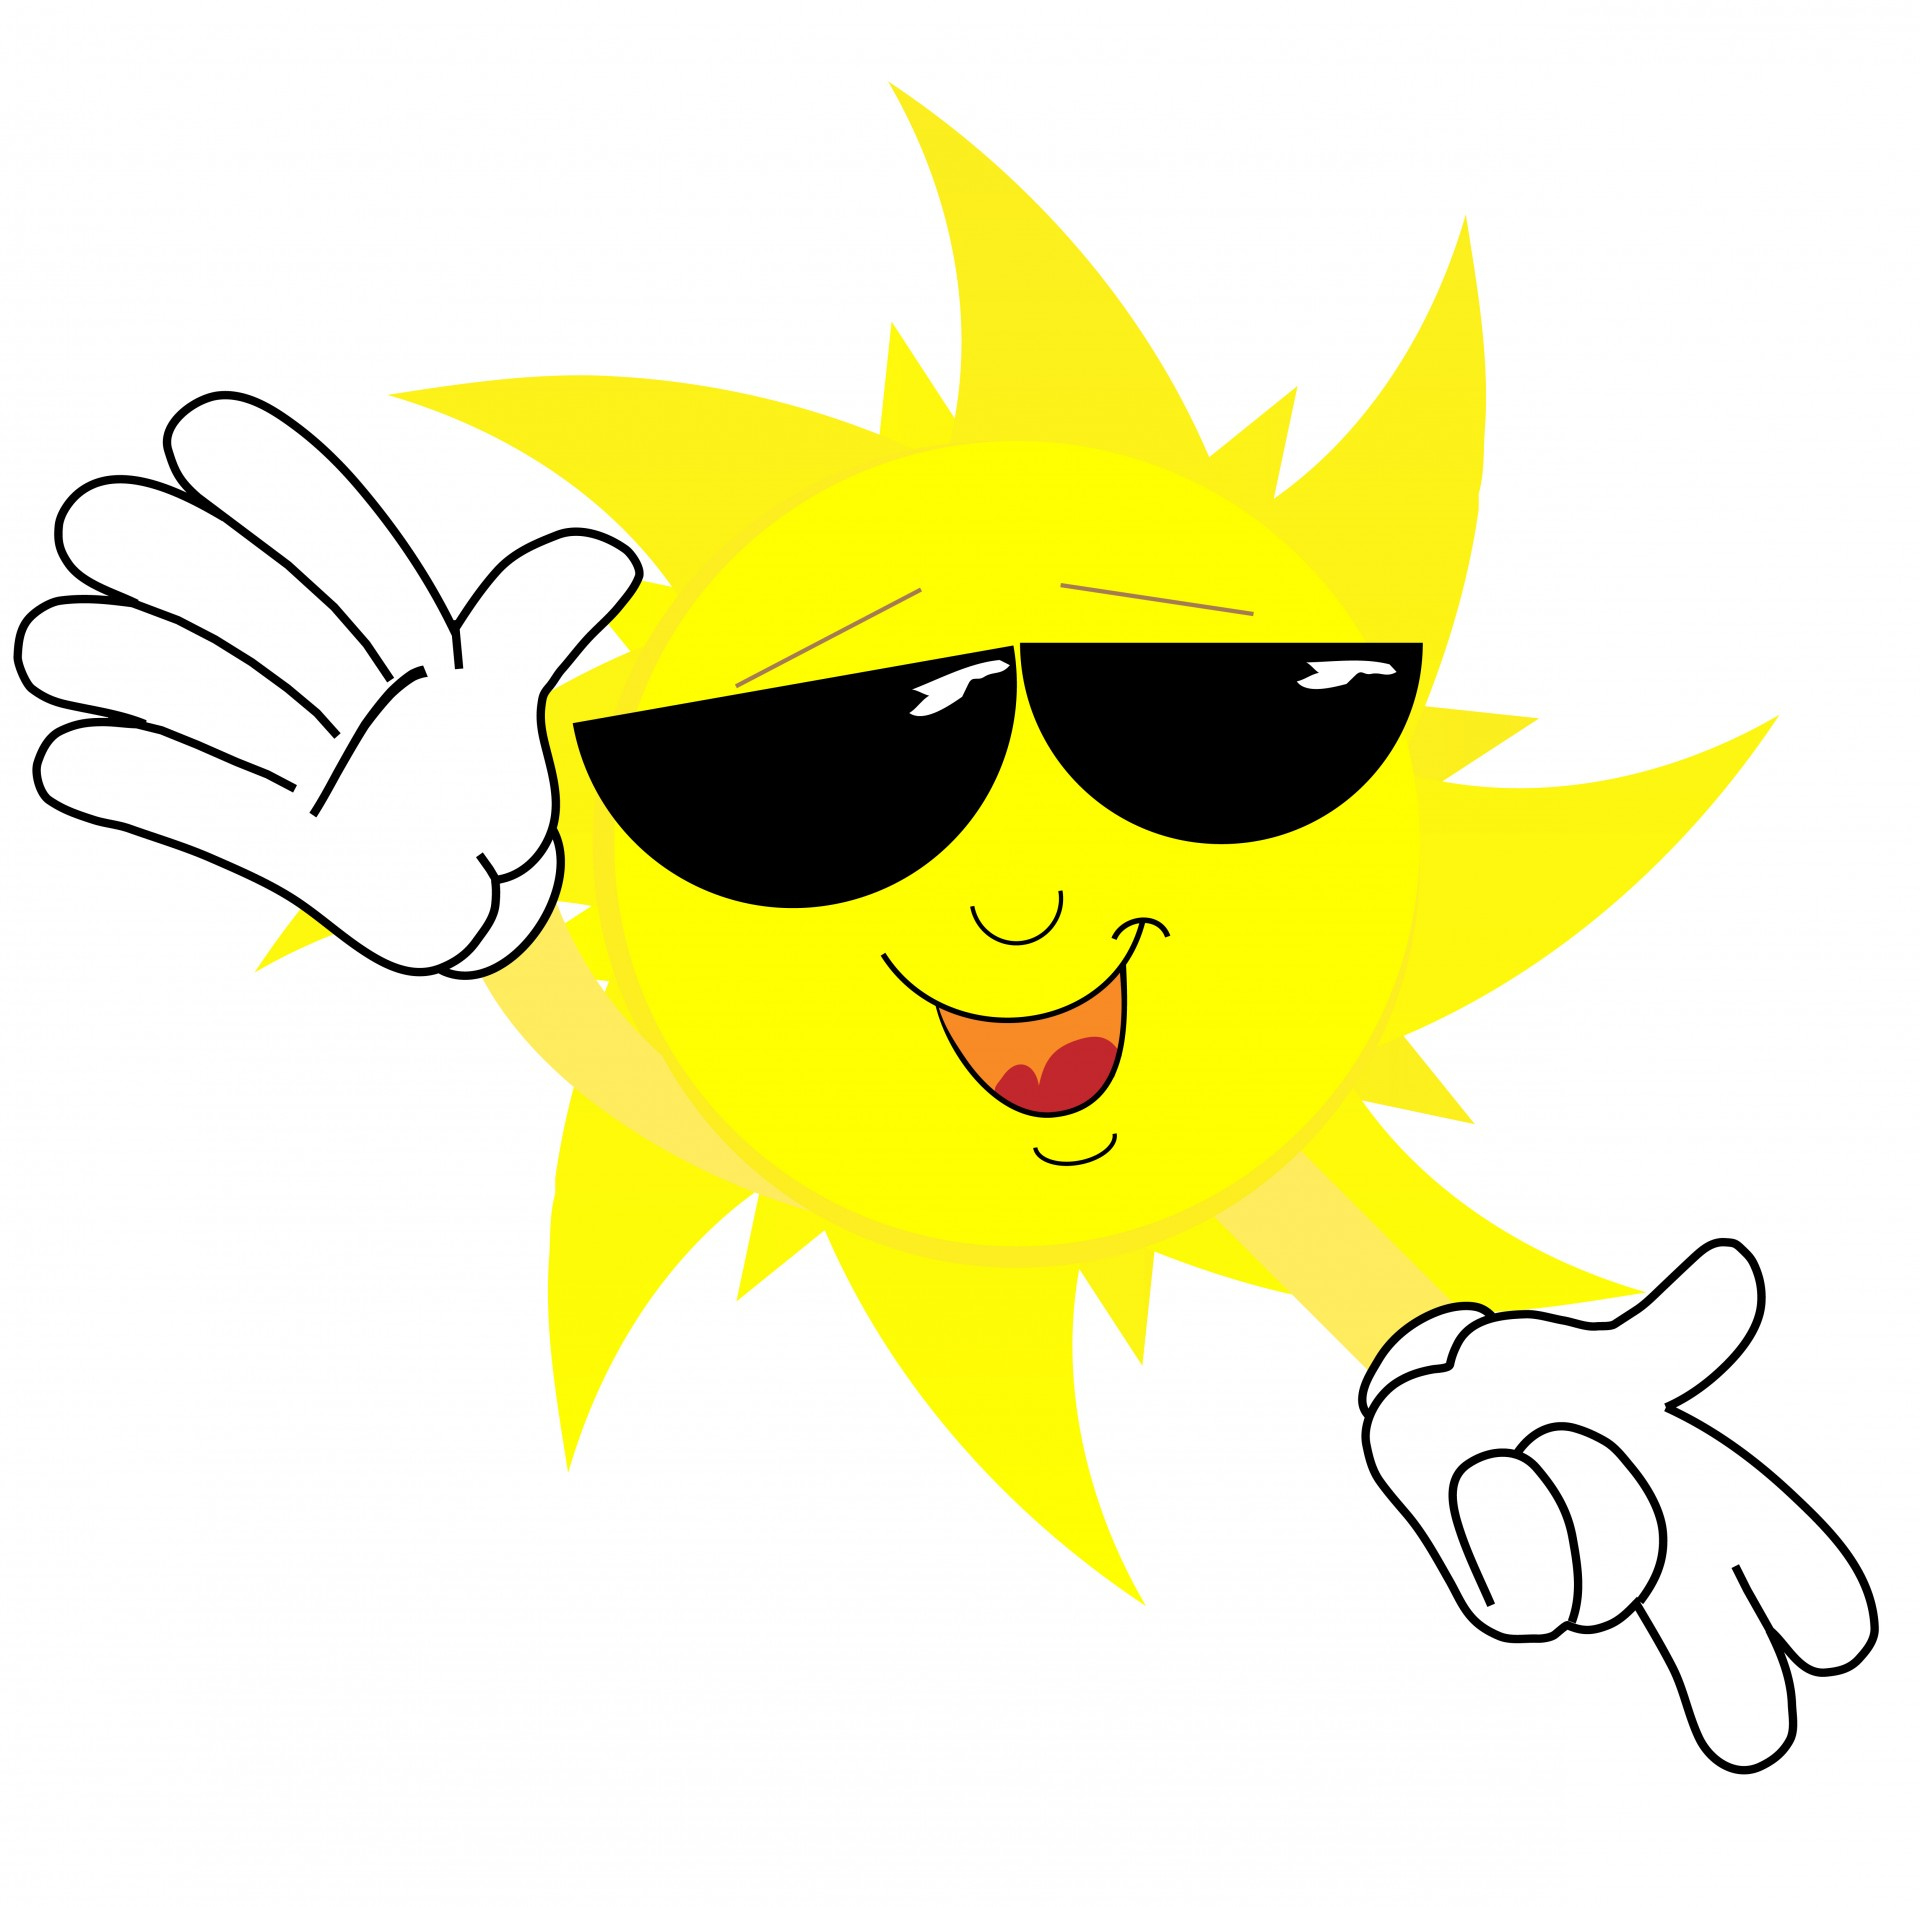 1920x1907 Smiling Sun Face In Sunglasses Free Stock Photo